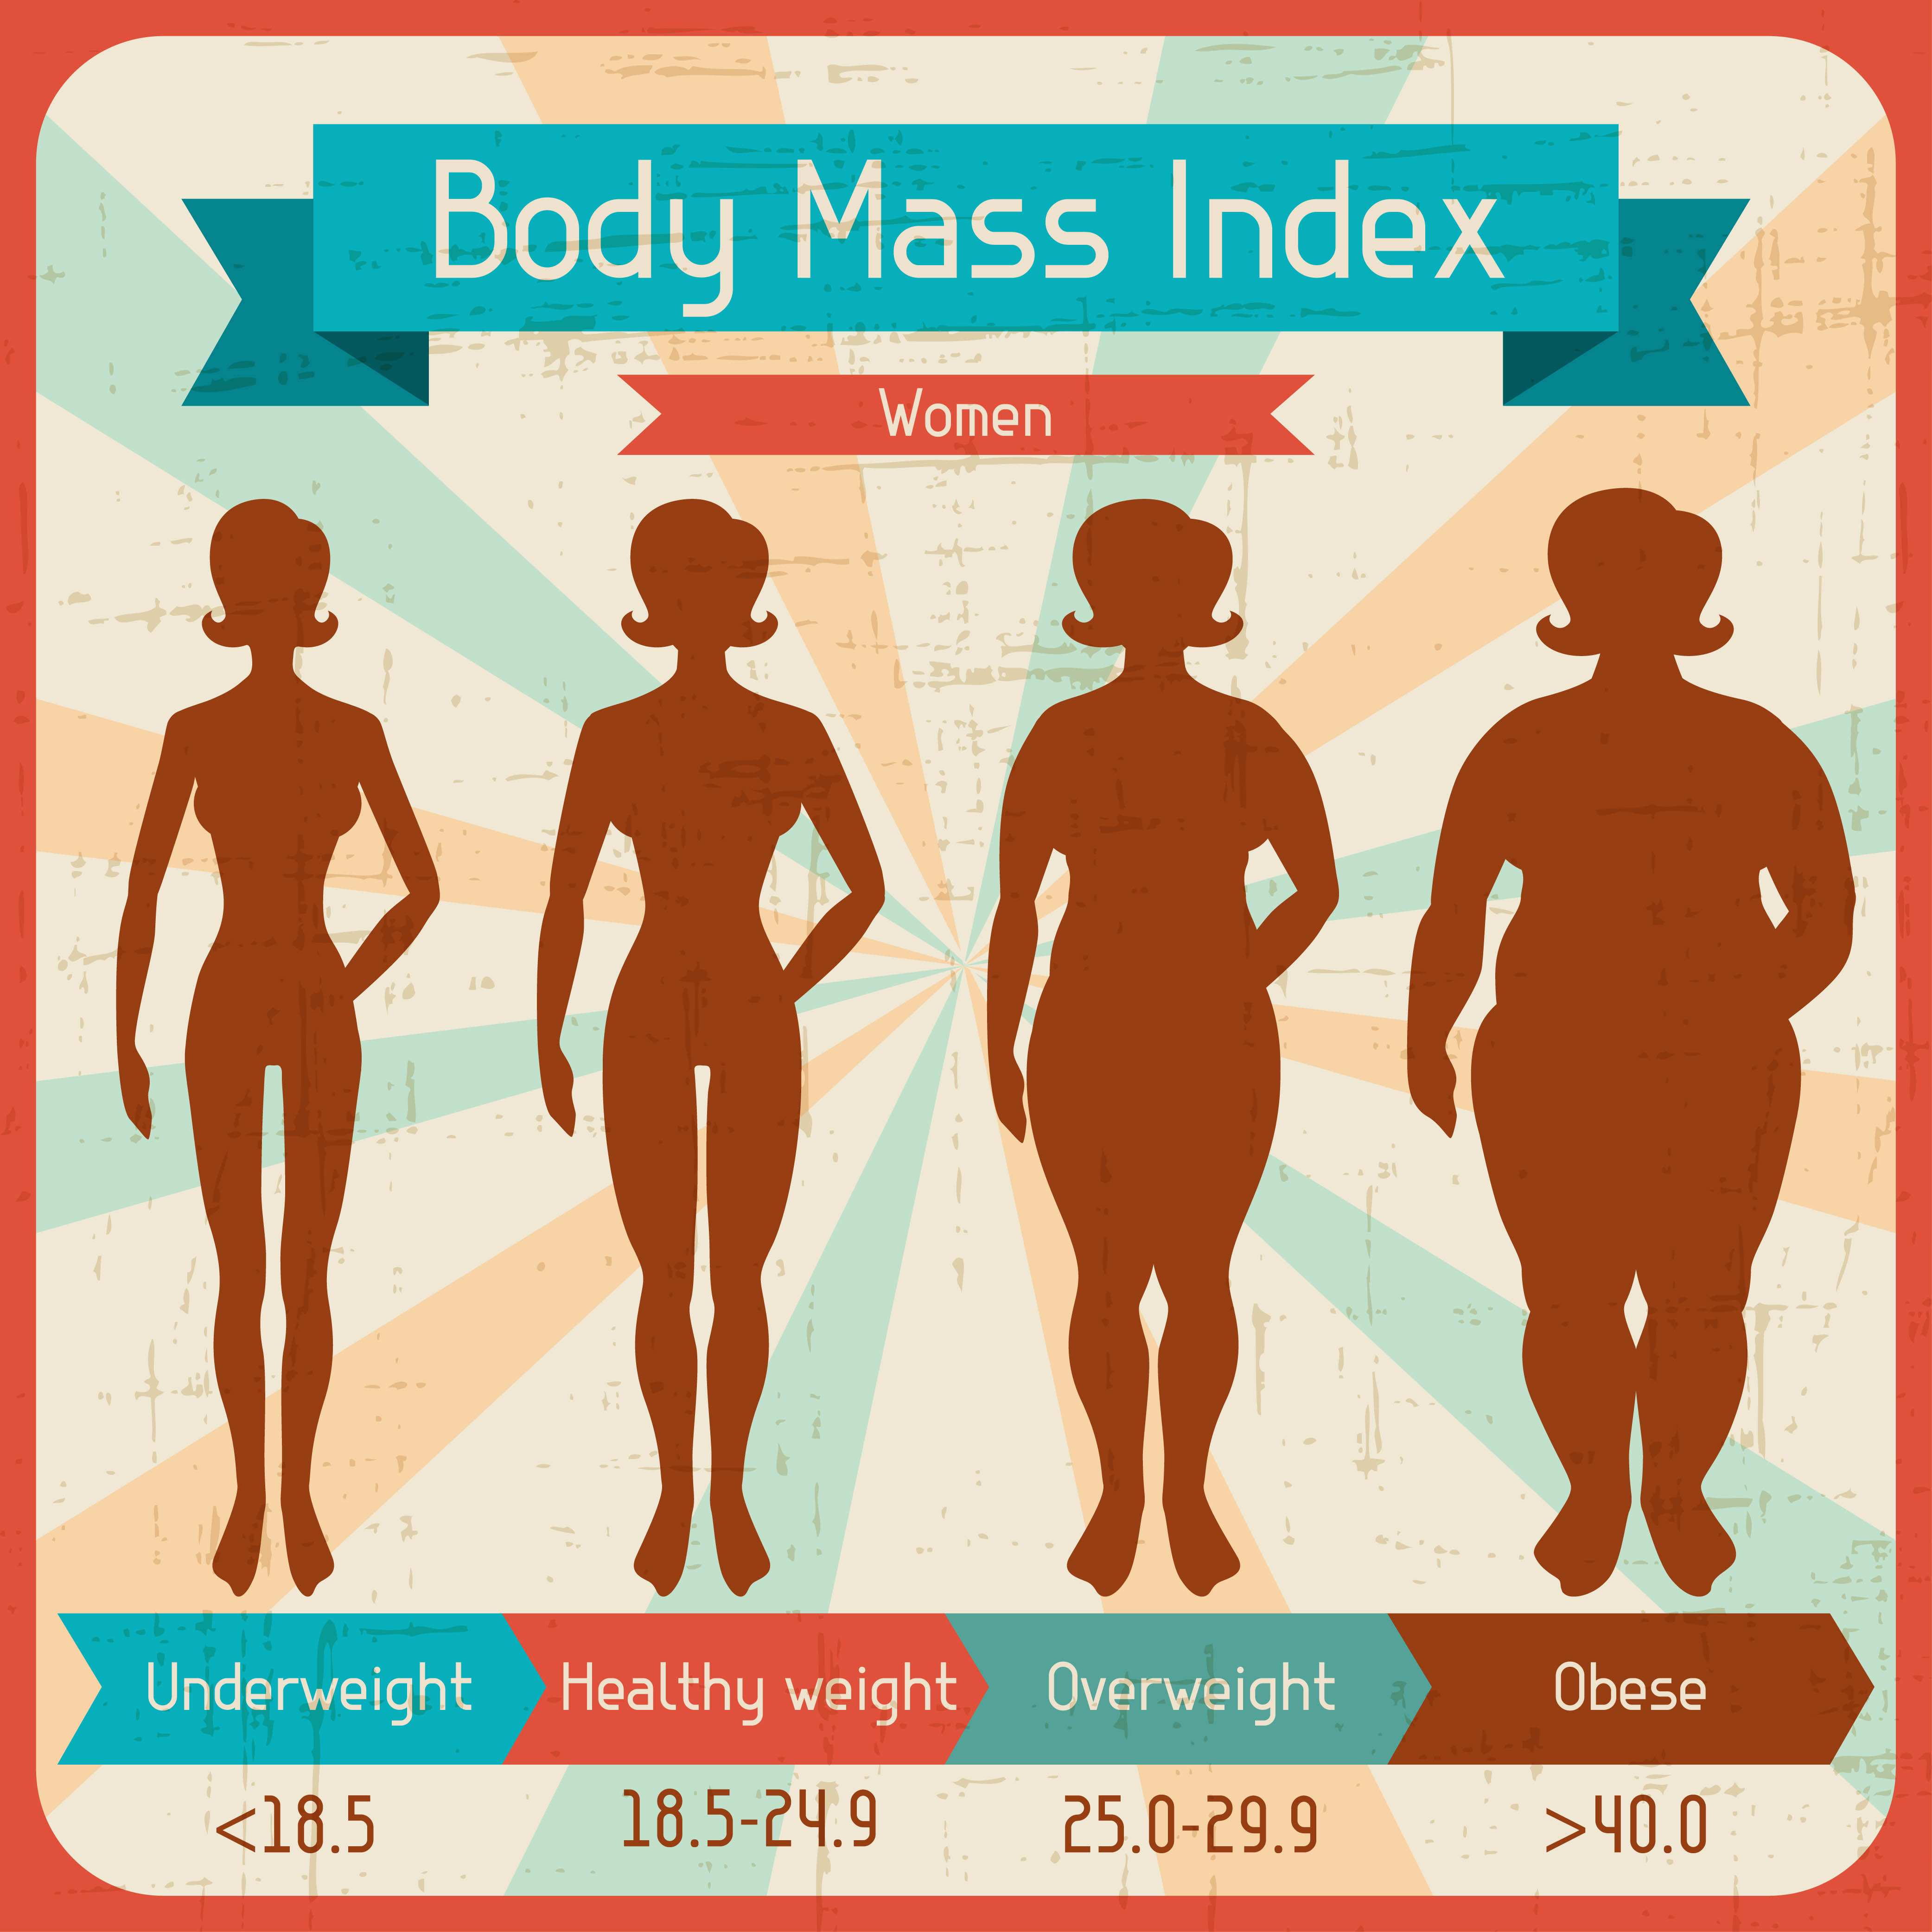 How To Calculate Bmi Biology By Martin Amis How Can Obesity Lead To  Diabetic Neuropathy?